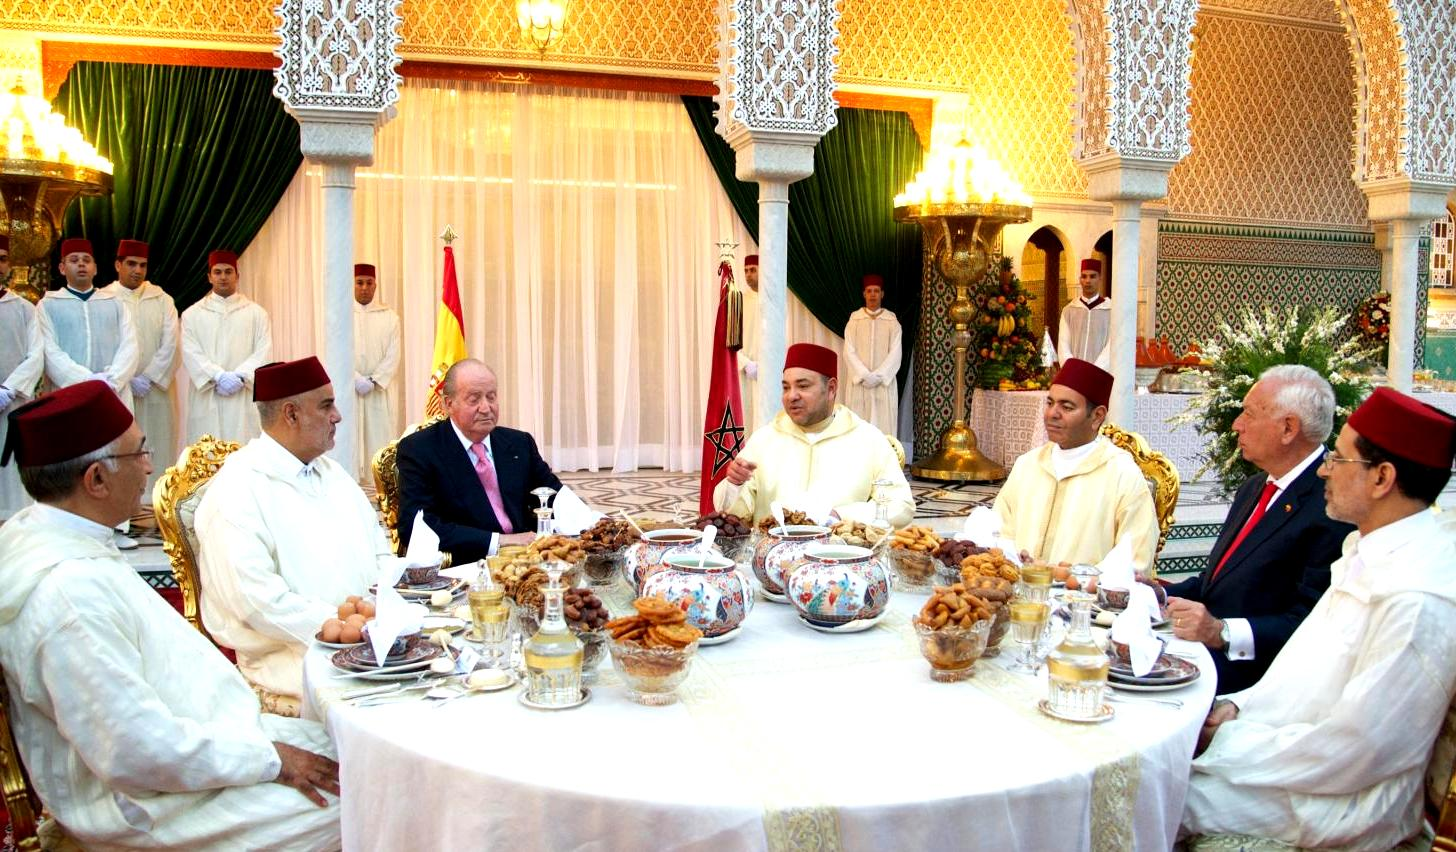 King Mohammed VI (center) and his brother Prince Moulay Rachid (next right) receive King Juan Carlos at the Royal Palace for an official dinner, joined by Morocco's Head of Government Abdelilah Benkirane and other officials,  during the Spanish sovereign's state visit to Morocco. Photo: Getty